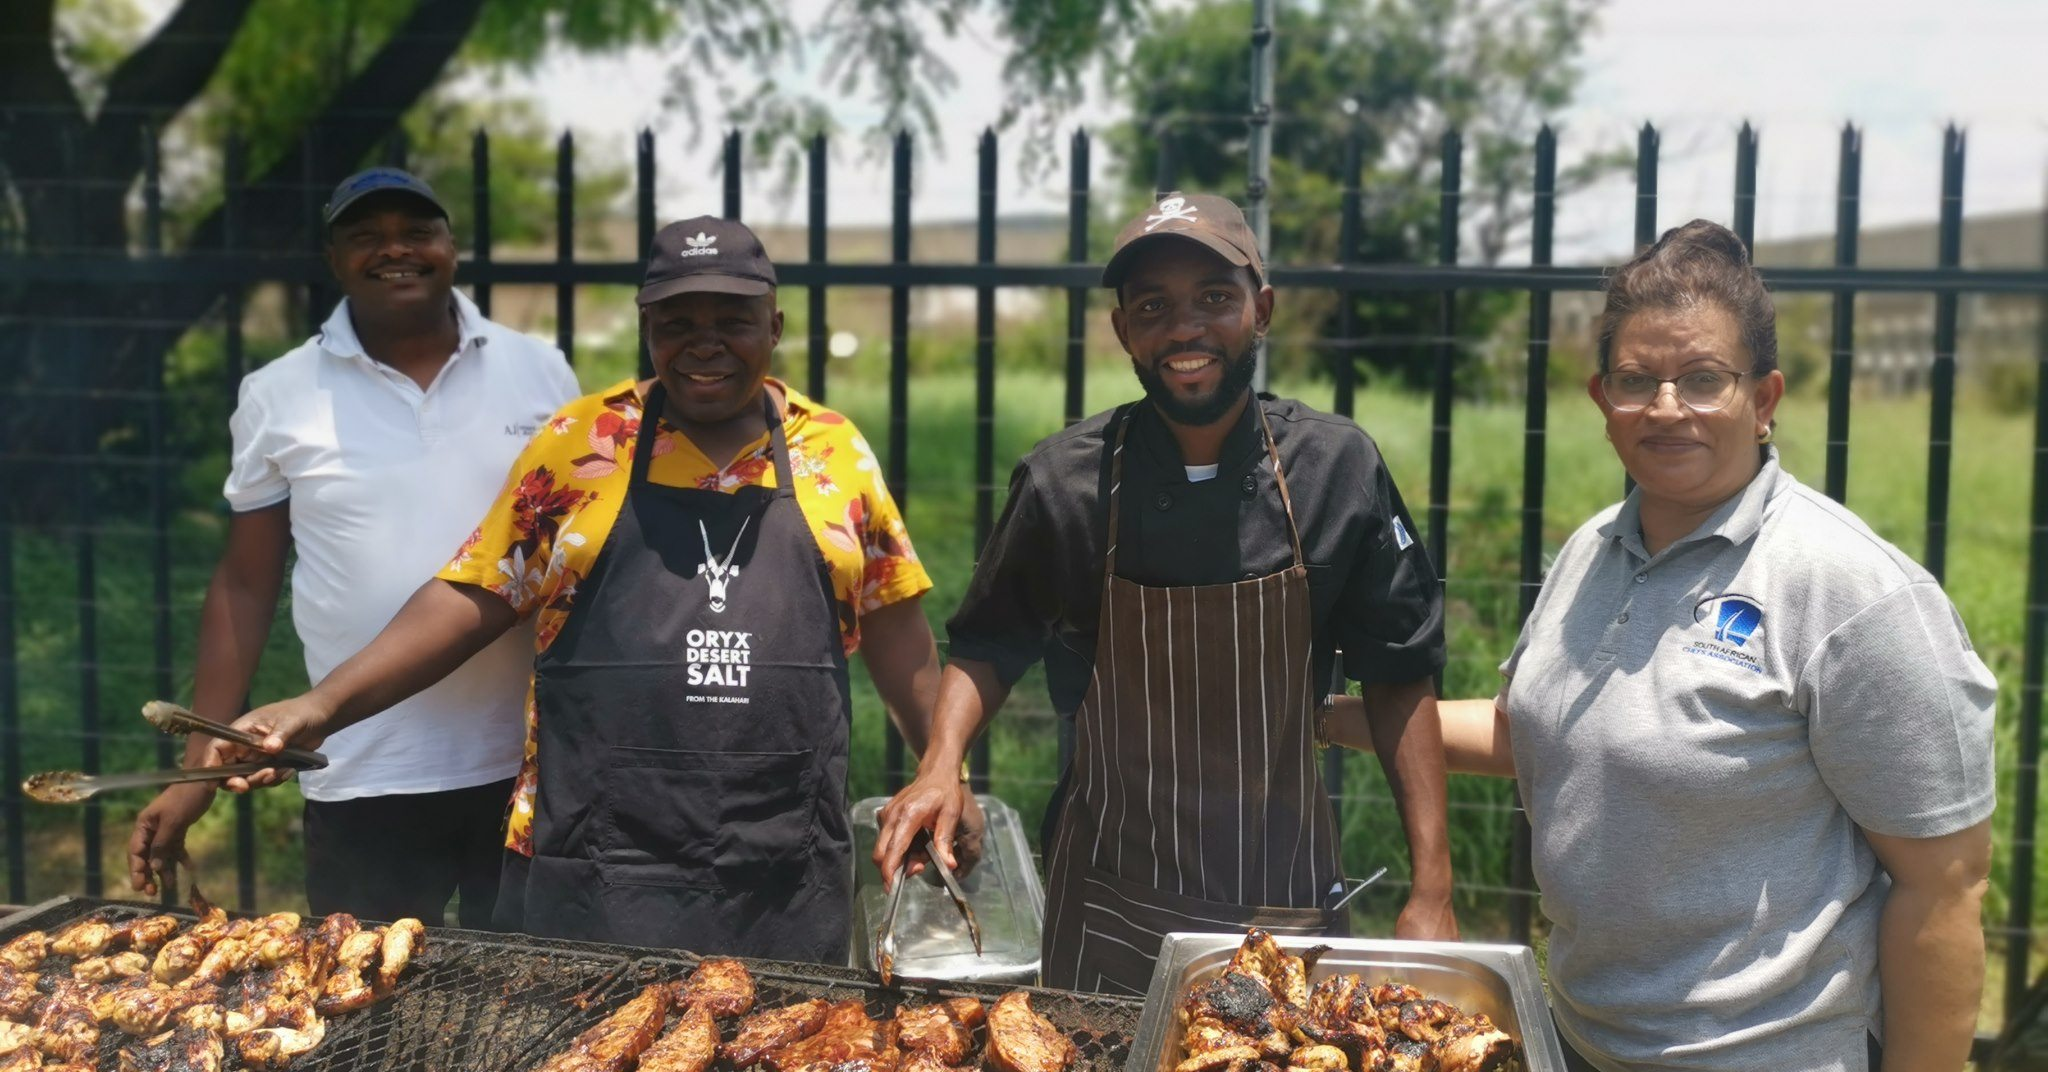 Three men and one standing behind a grill cooking food to give to those in need